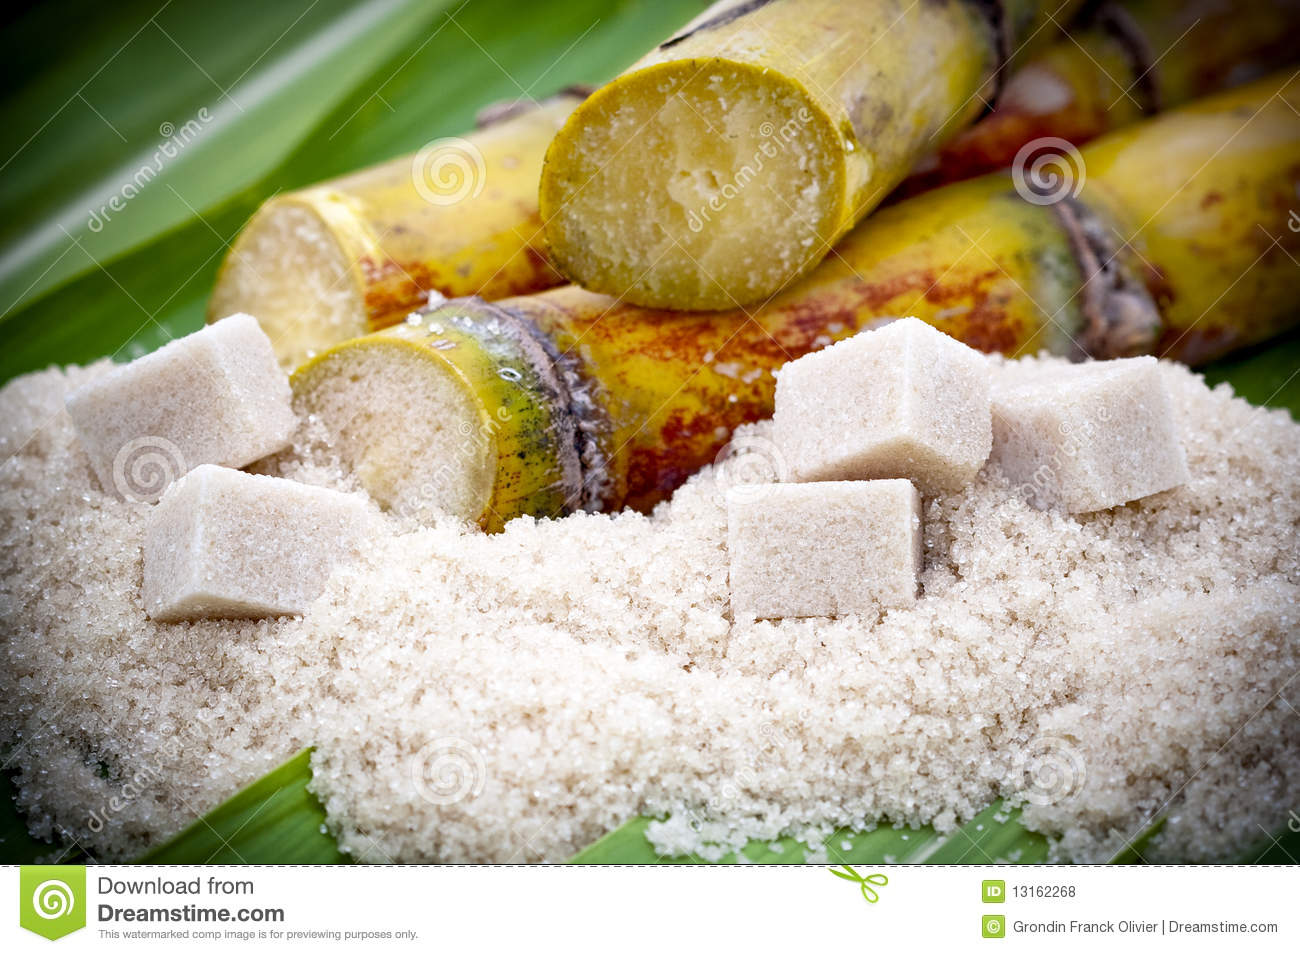 Cut Sugarcane plants